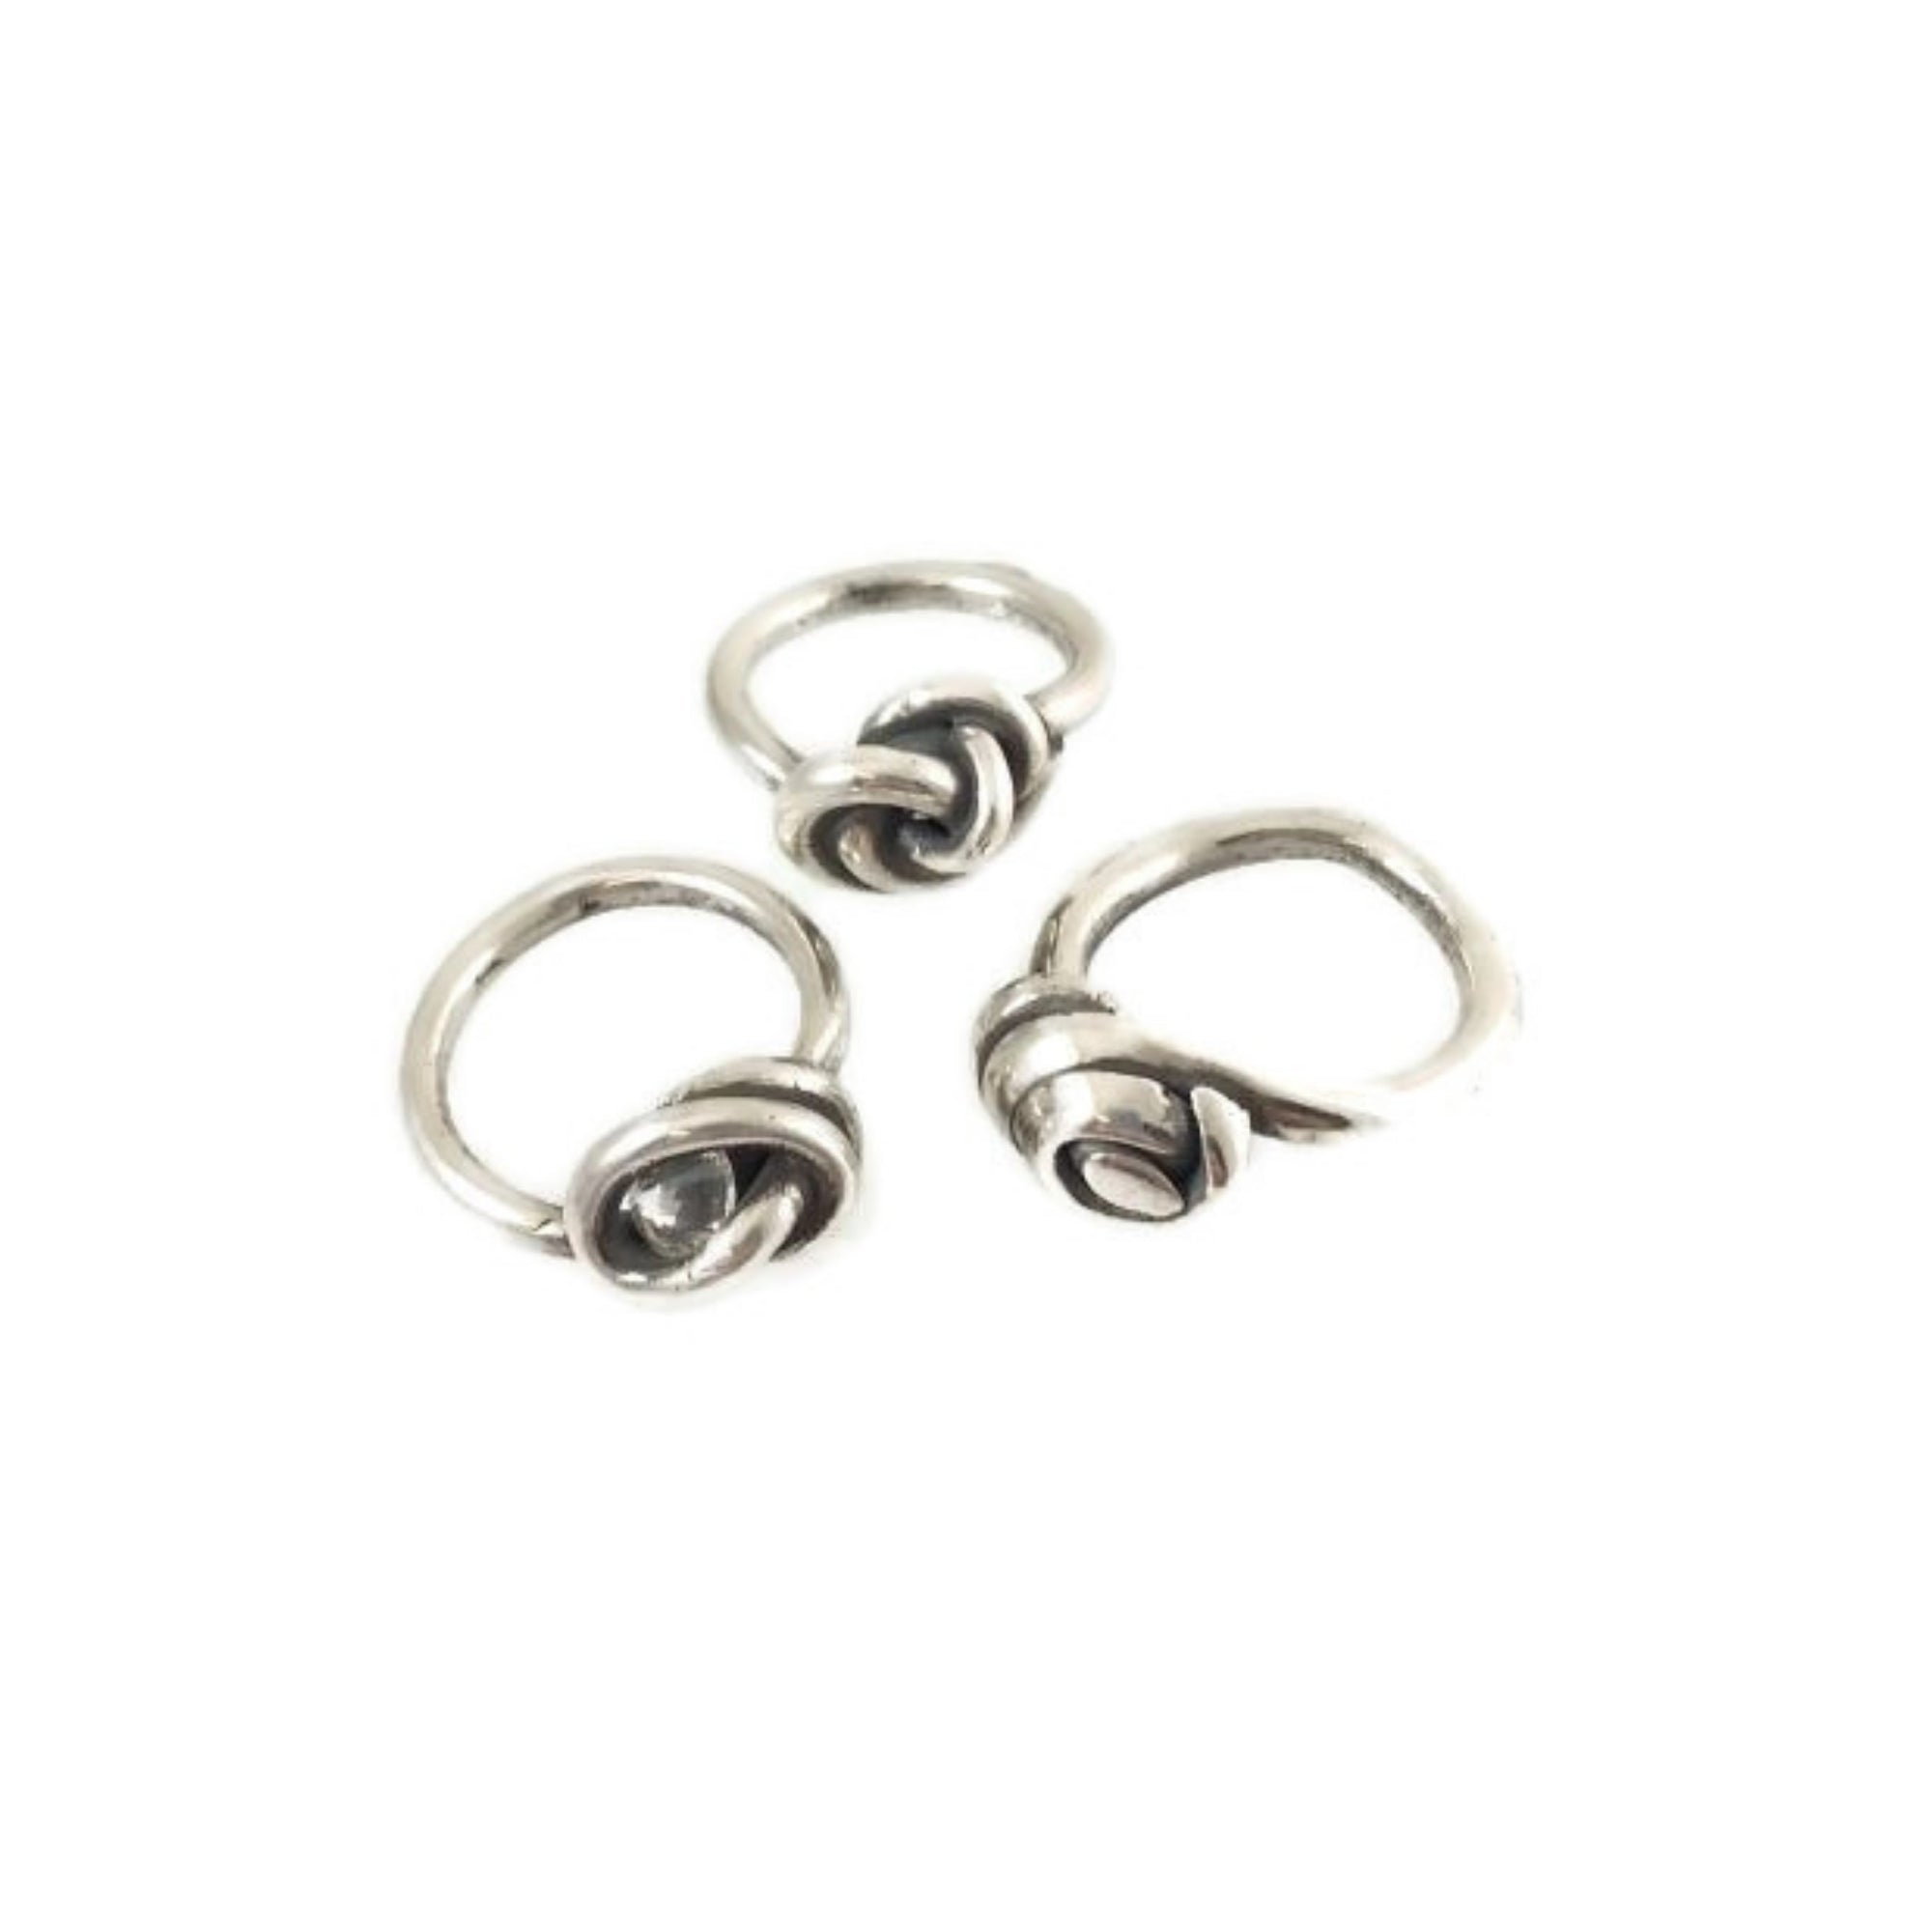 Three fine silver rings made from silver metal clay and wrapped in variously intricate knots.